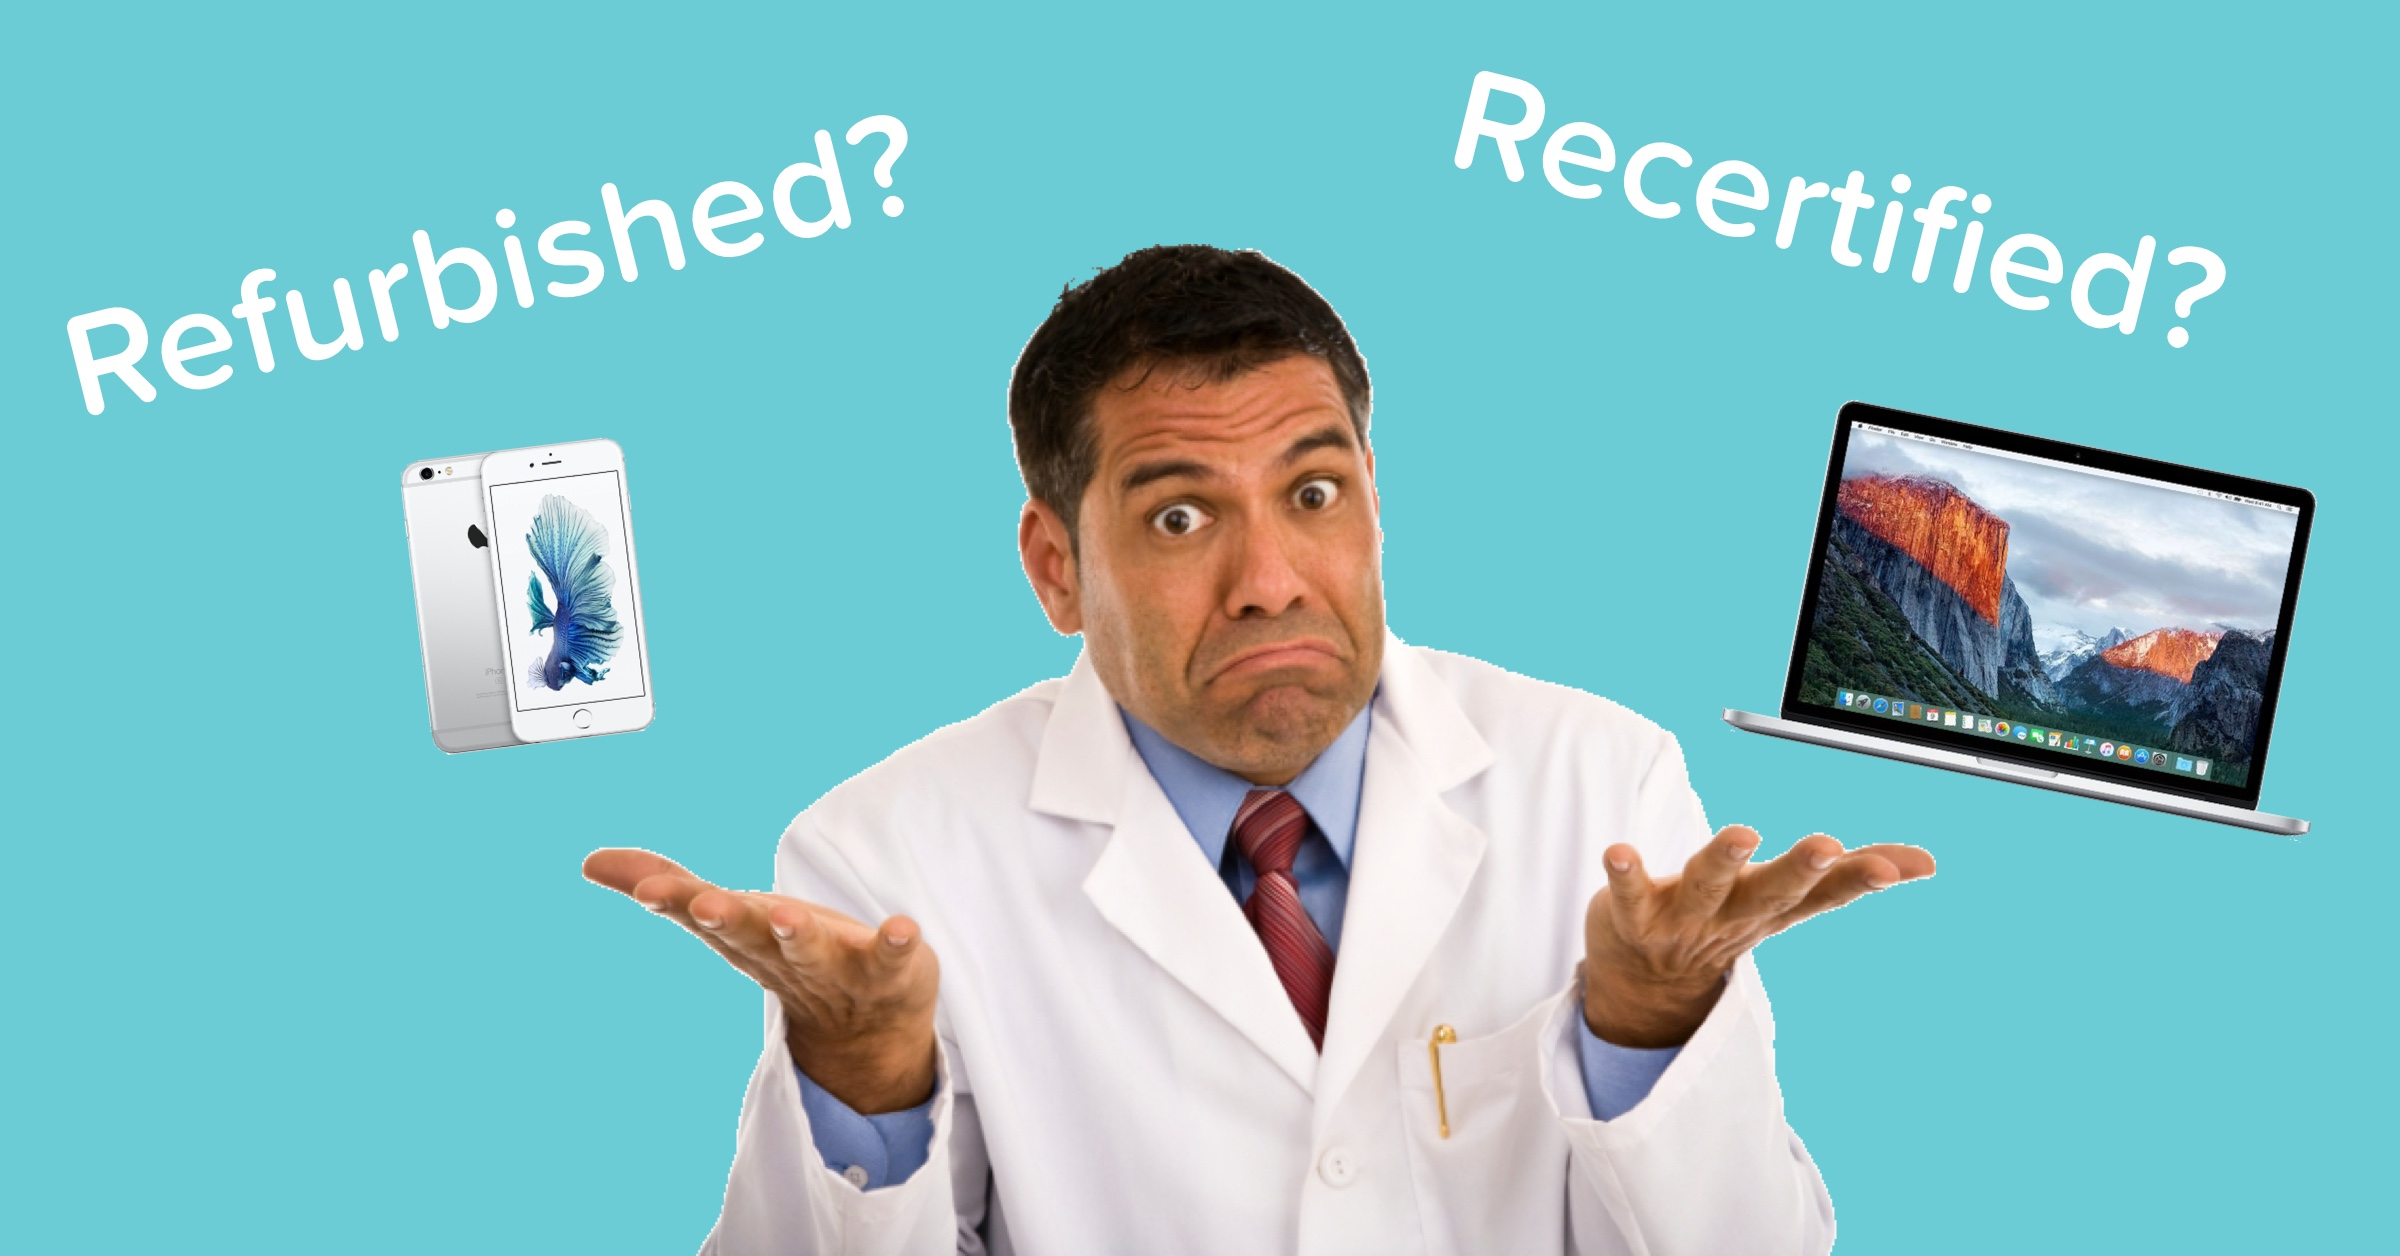 Refurbished vs. Recertified - What's the Difference?